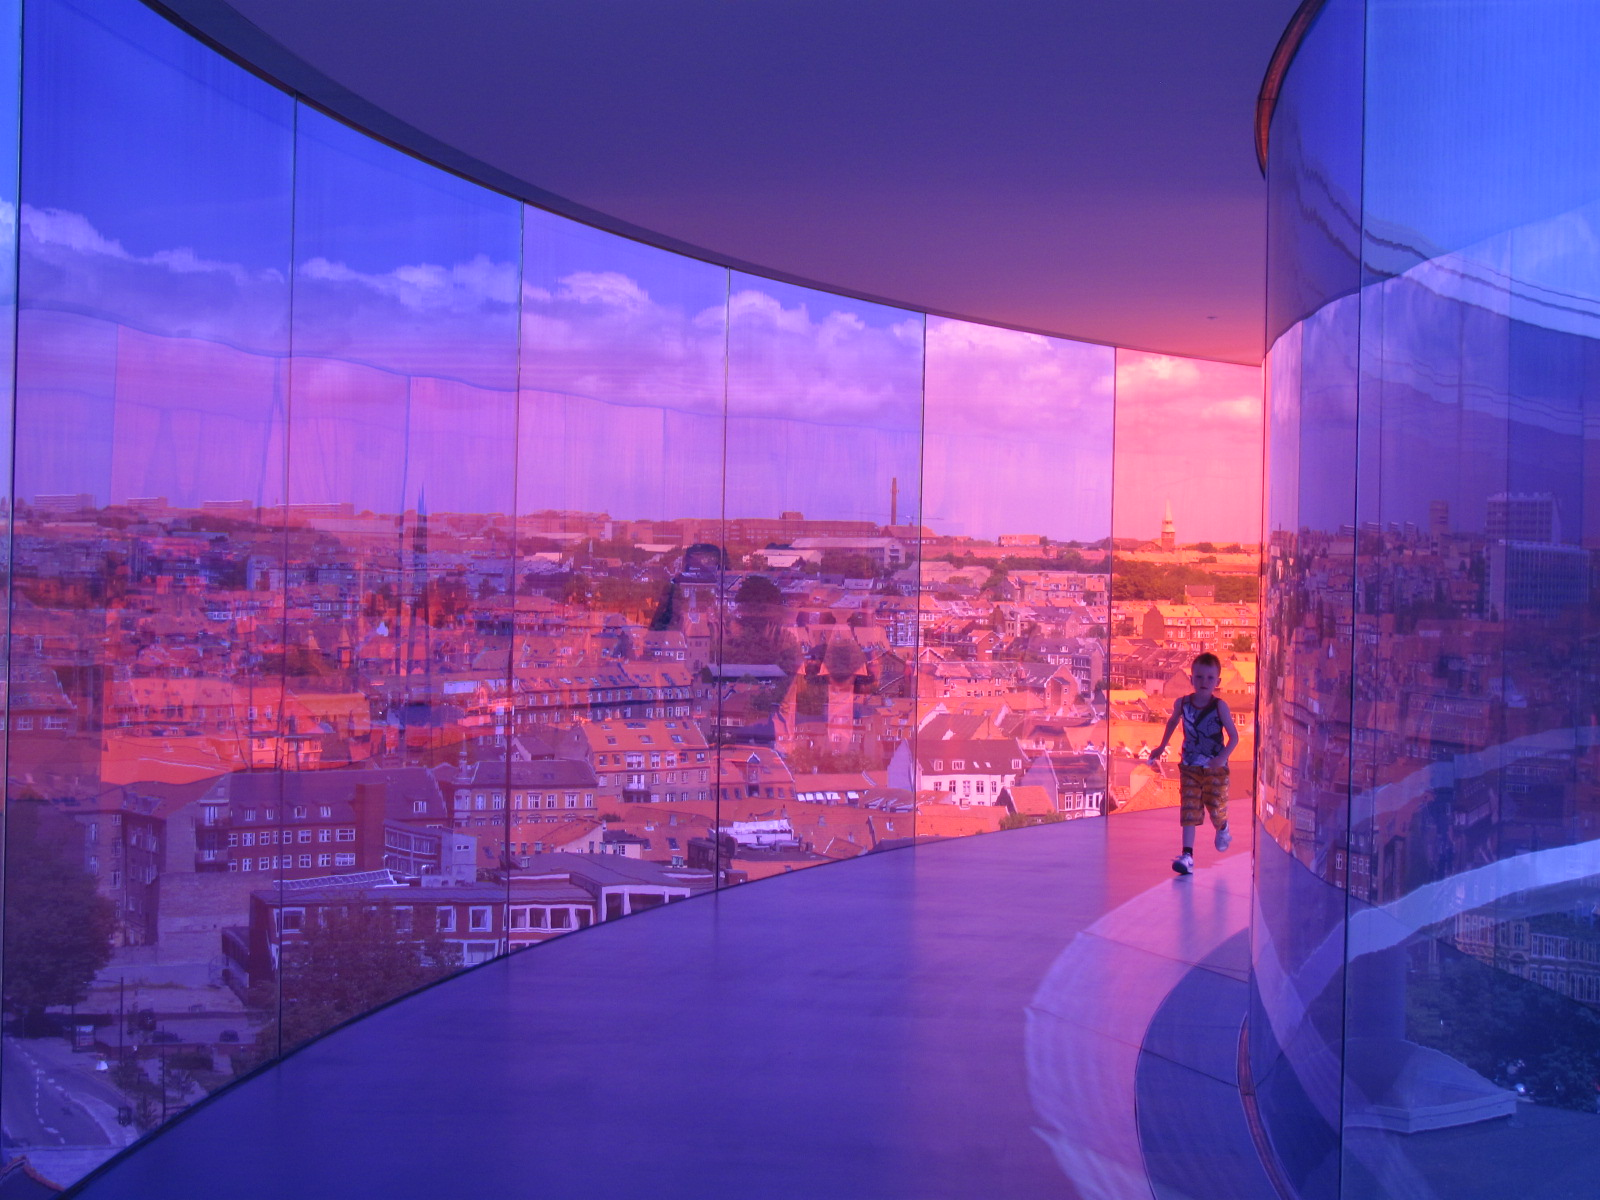 Your-Rainbow-Panorama-by-Olafur-Eliasson.jpg